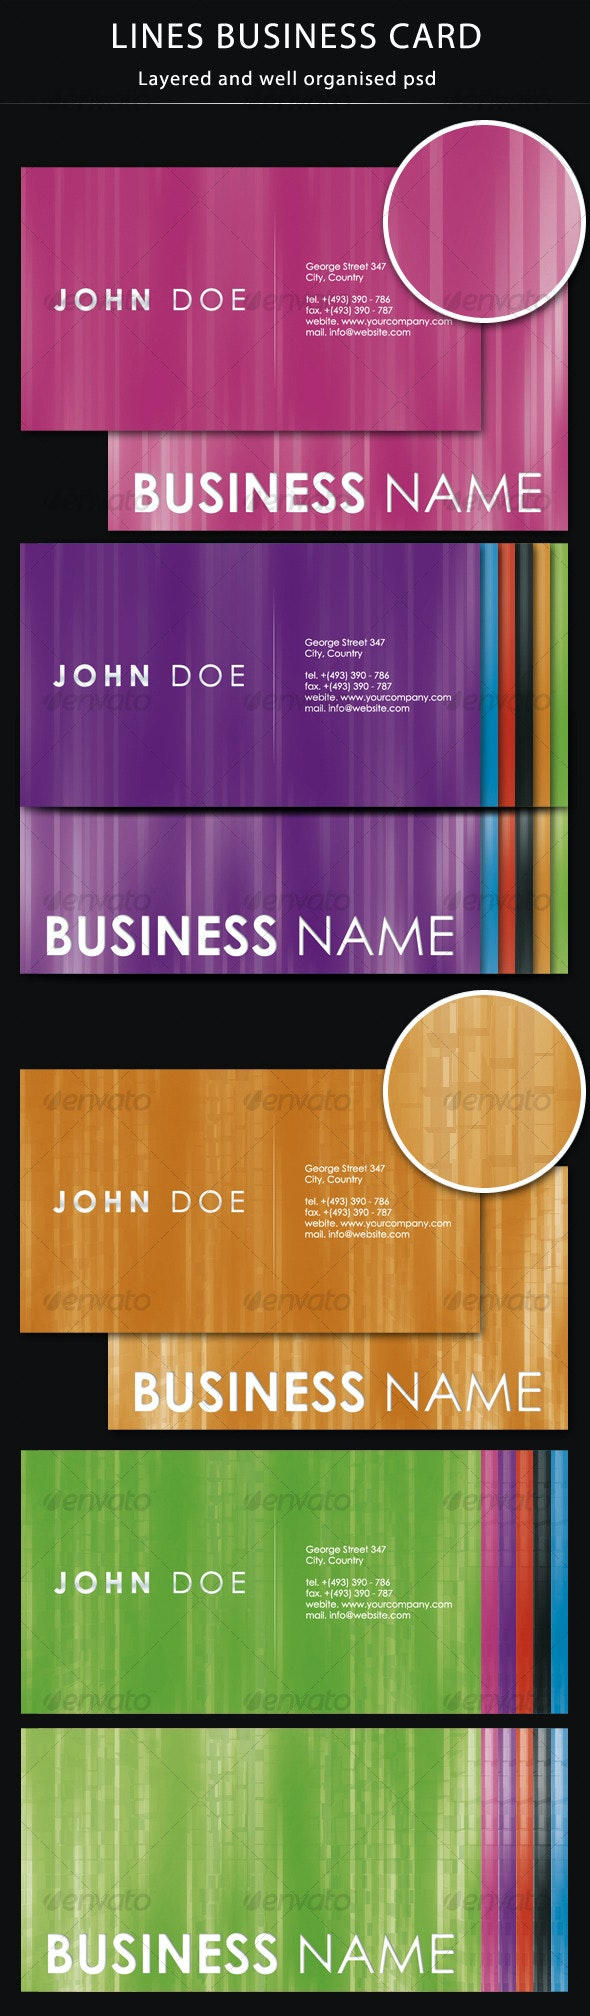 Lines Business Card - Creative Business Cards